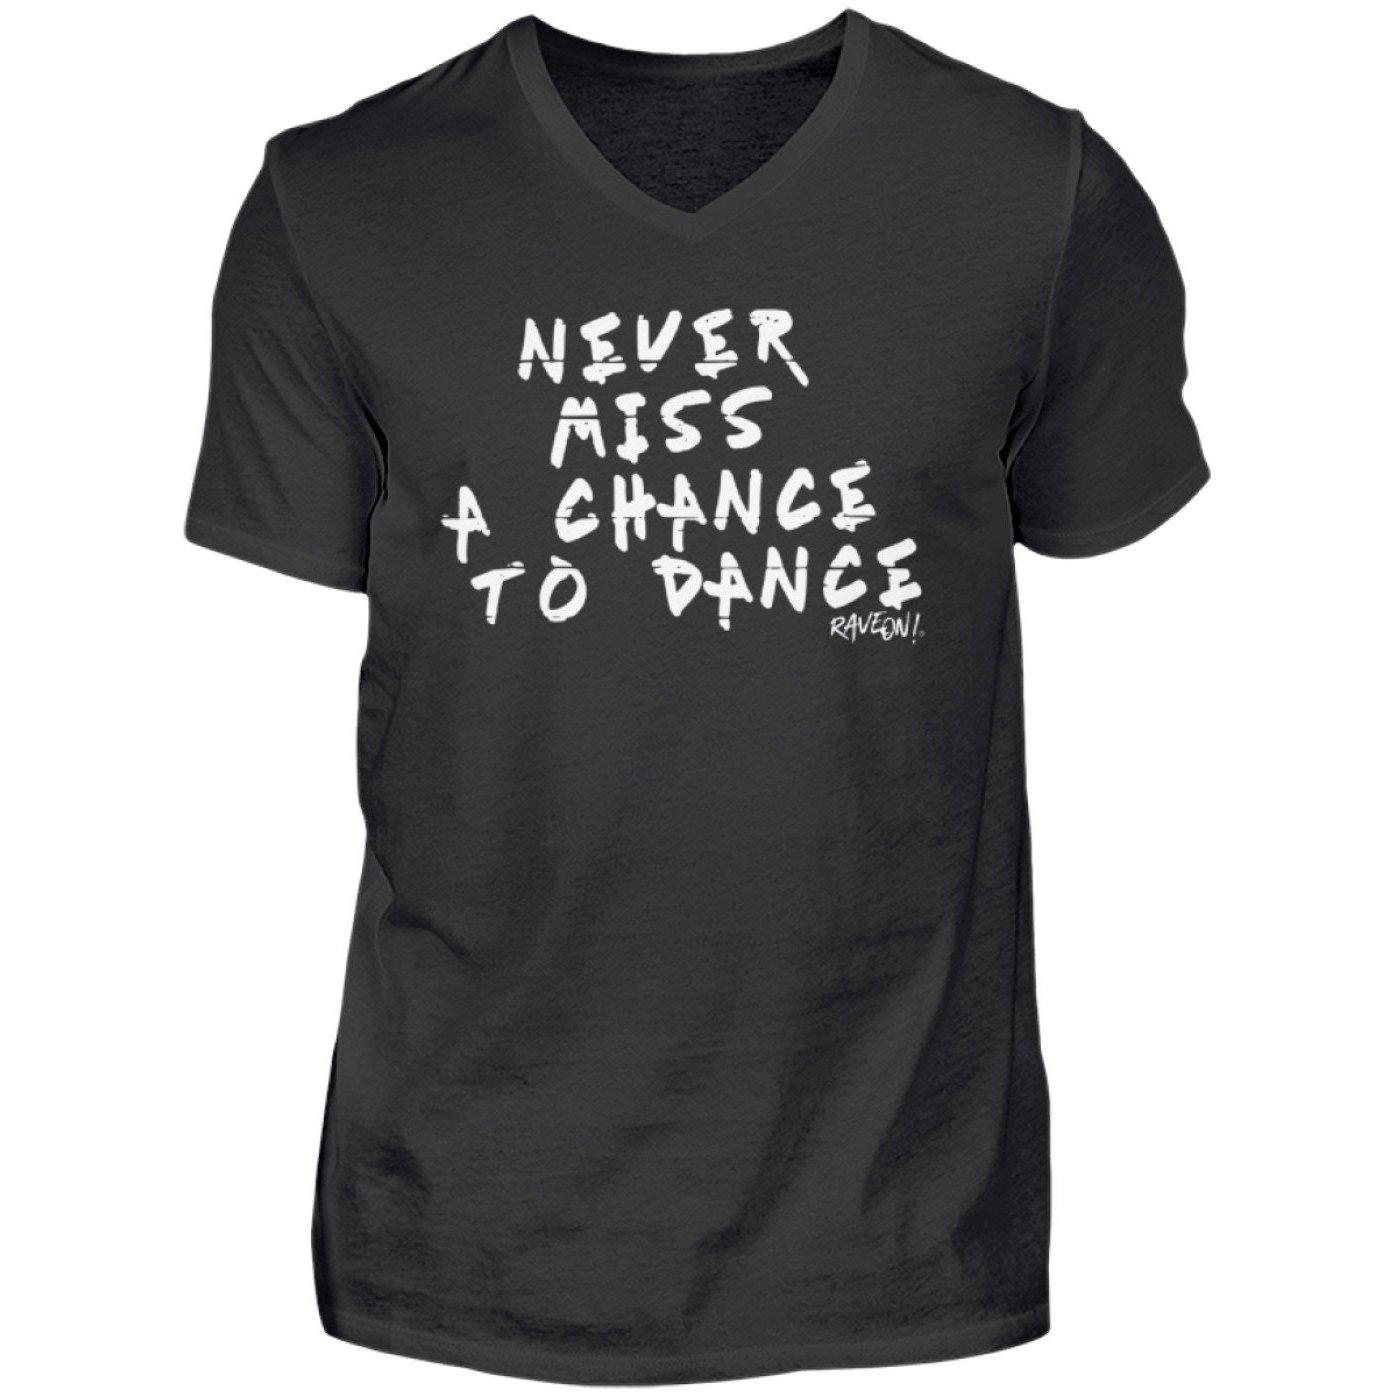 Never Miss A Chance to Dance - Rave On!® - Herren V-Neck Shirt V-Neck Herrenshirt Black / S - Rave On!® der Club & Techno Szene Shop für Coole Junge Mode Streetwear Style & Fashion Outfits + Sexy Festival 420 Stuff